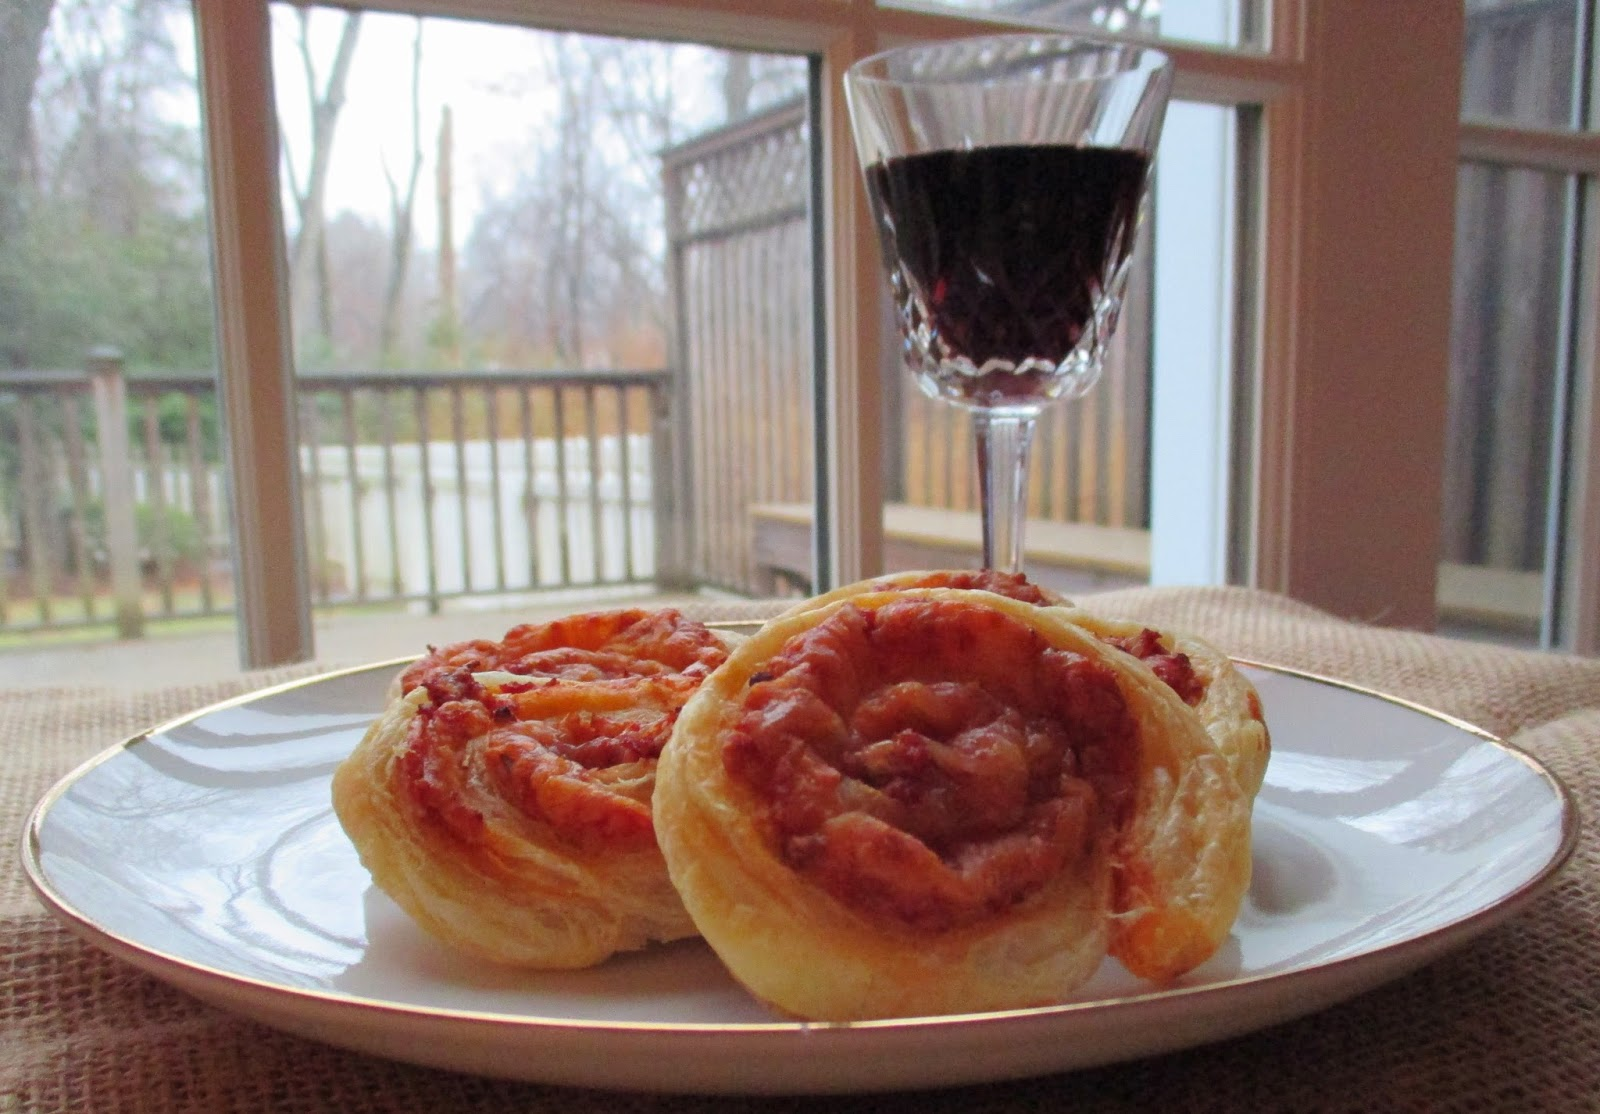 tomato and cheese pinwheels with a glass of red wine